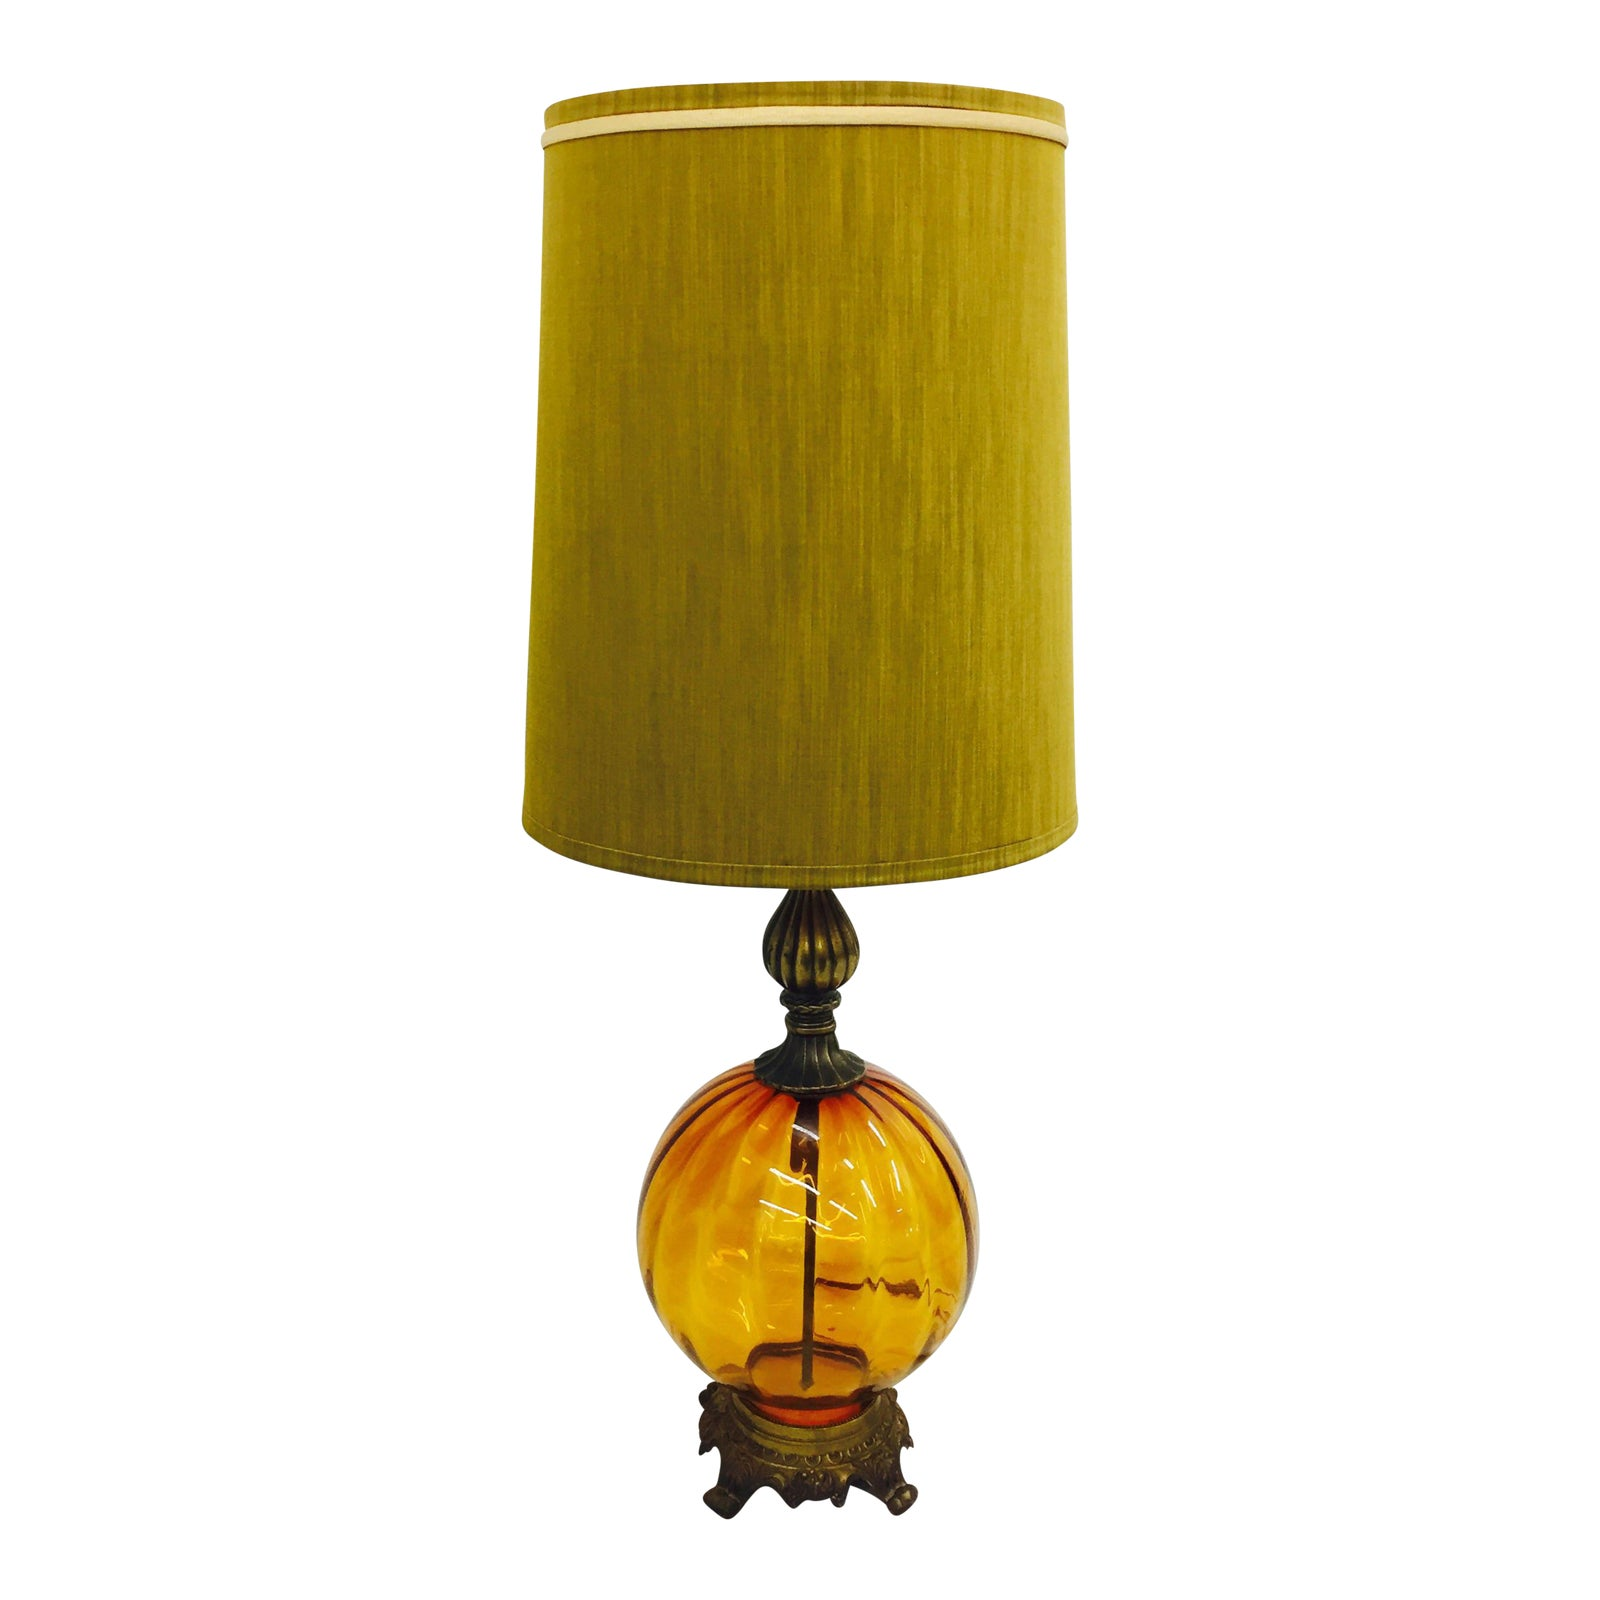 candle wallpaper darkness photography lantern bulb bottle yellow macro lamp night red glass light incandescent fixture en flame lighting